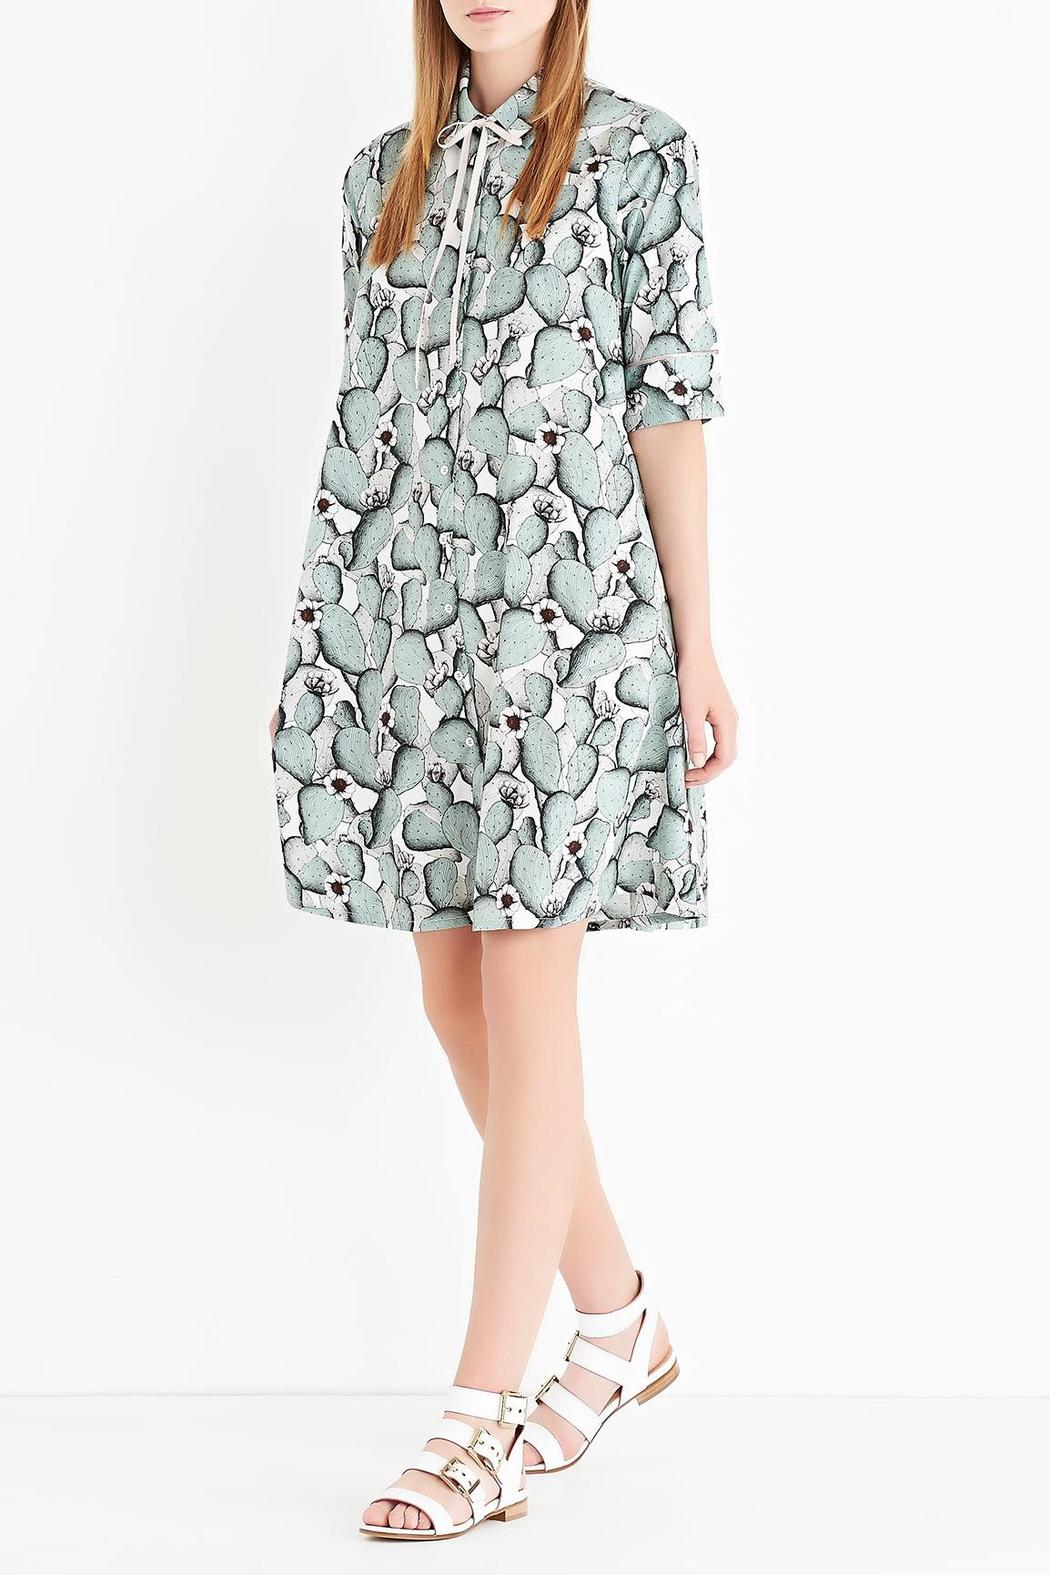 Ottod'ame Cactus Button-Down Dress - Front Cropped Image